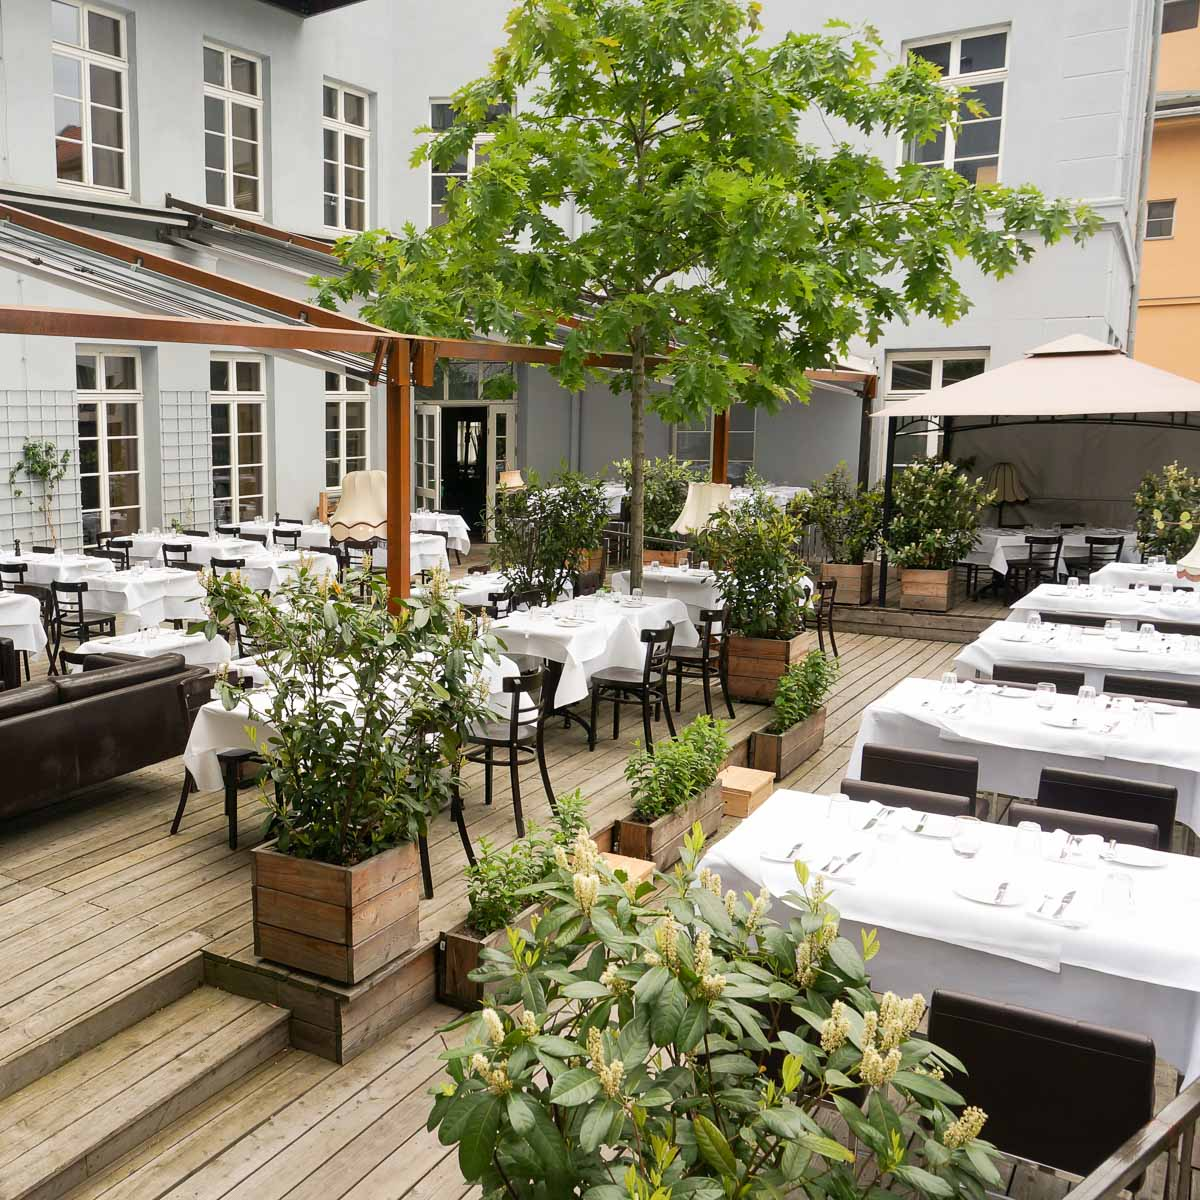 The Grand Terrasse in Berlin-Mitte